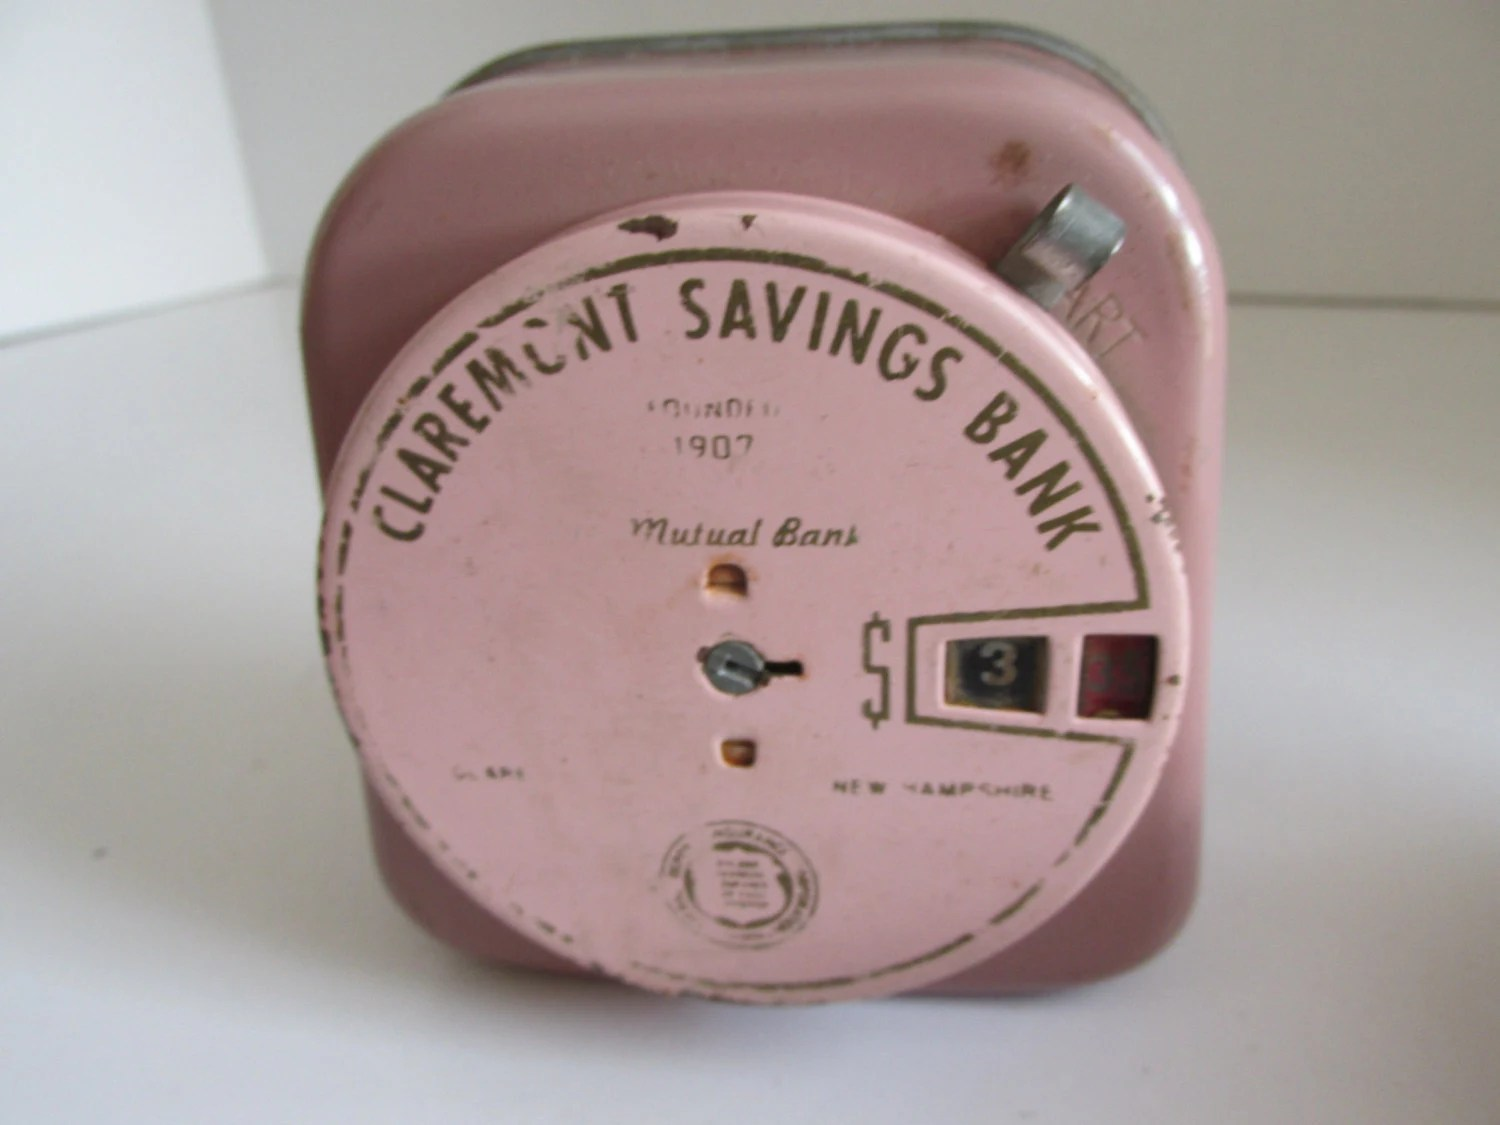 Piggy Bank With Counter Antique Coin Bank Claremont Savings Bank Claremont Nh Vintage